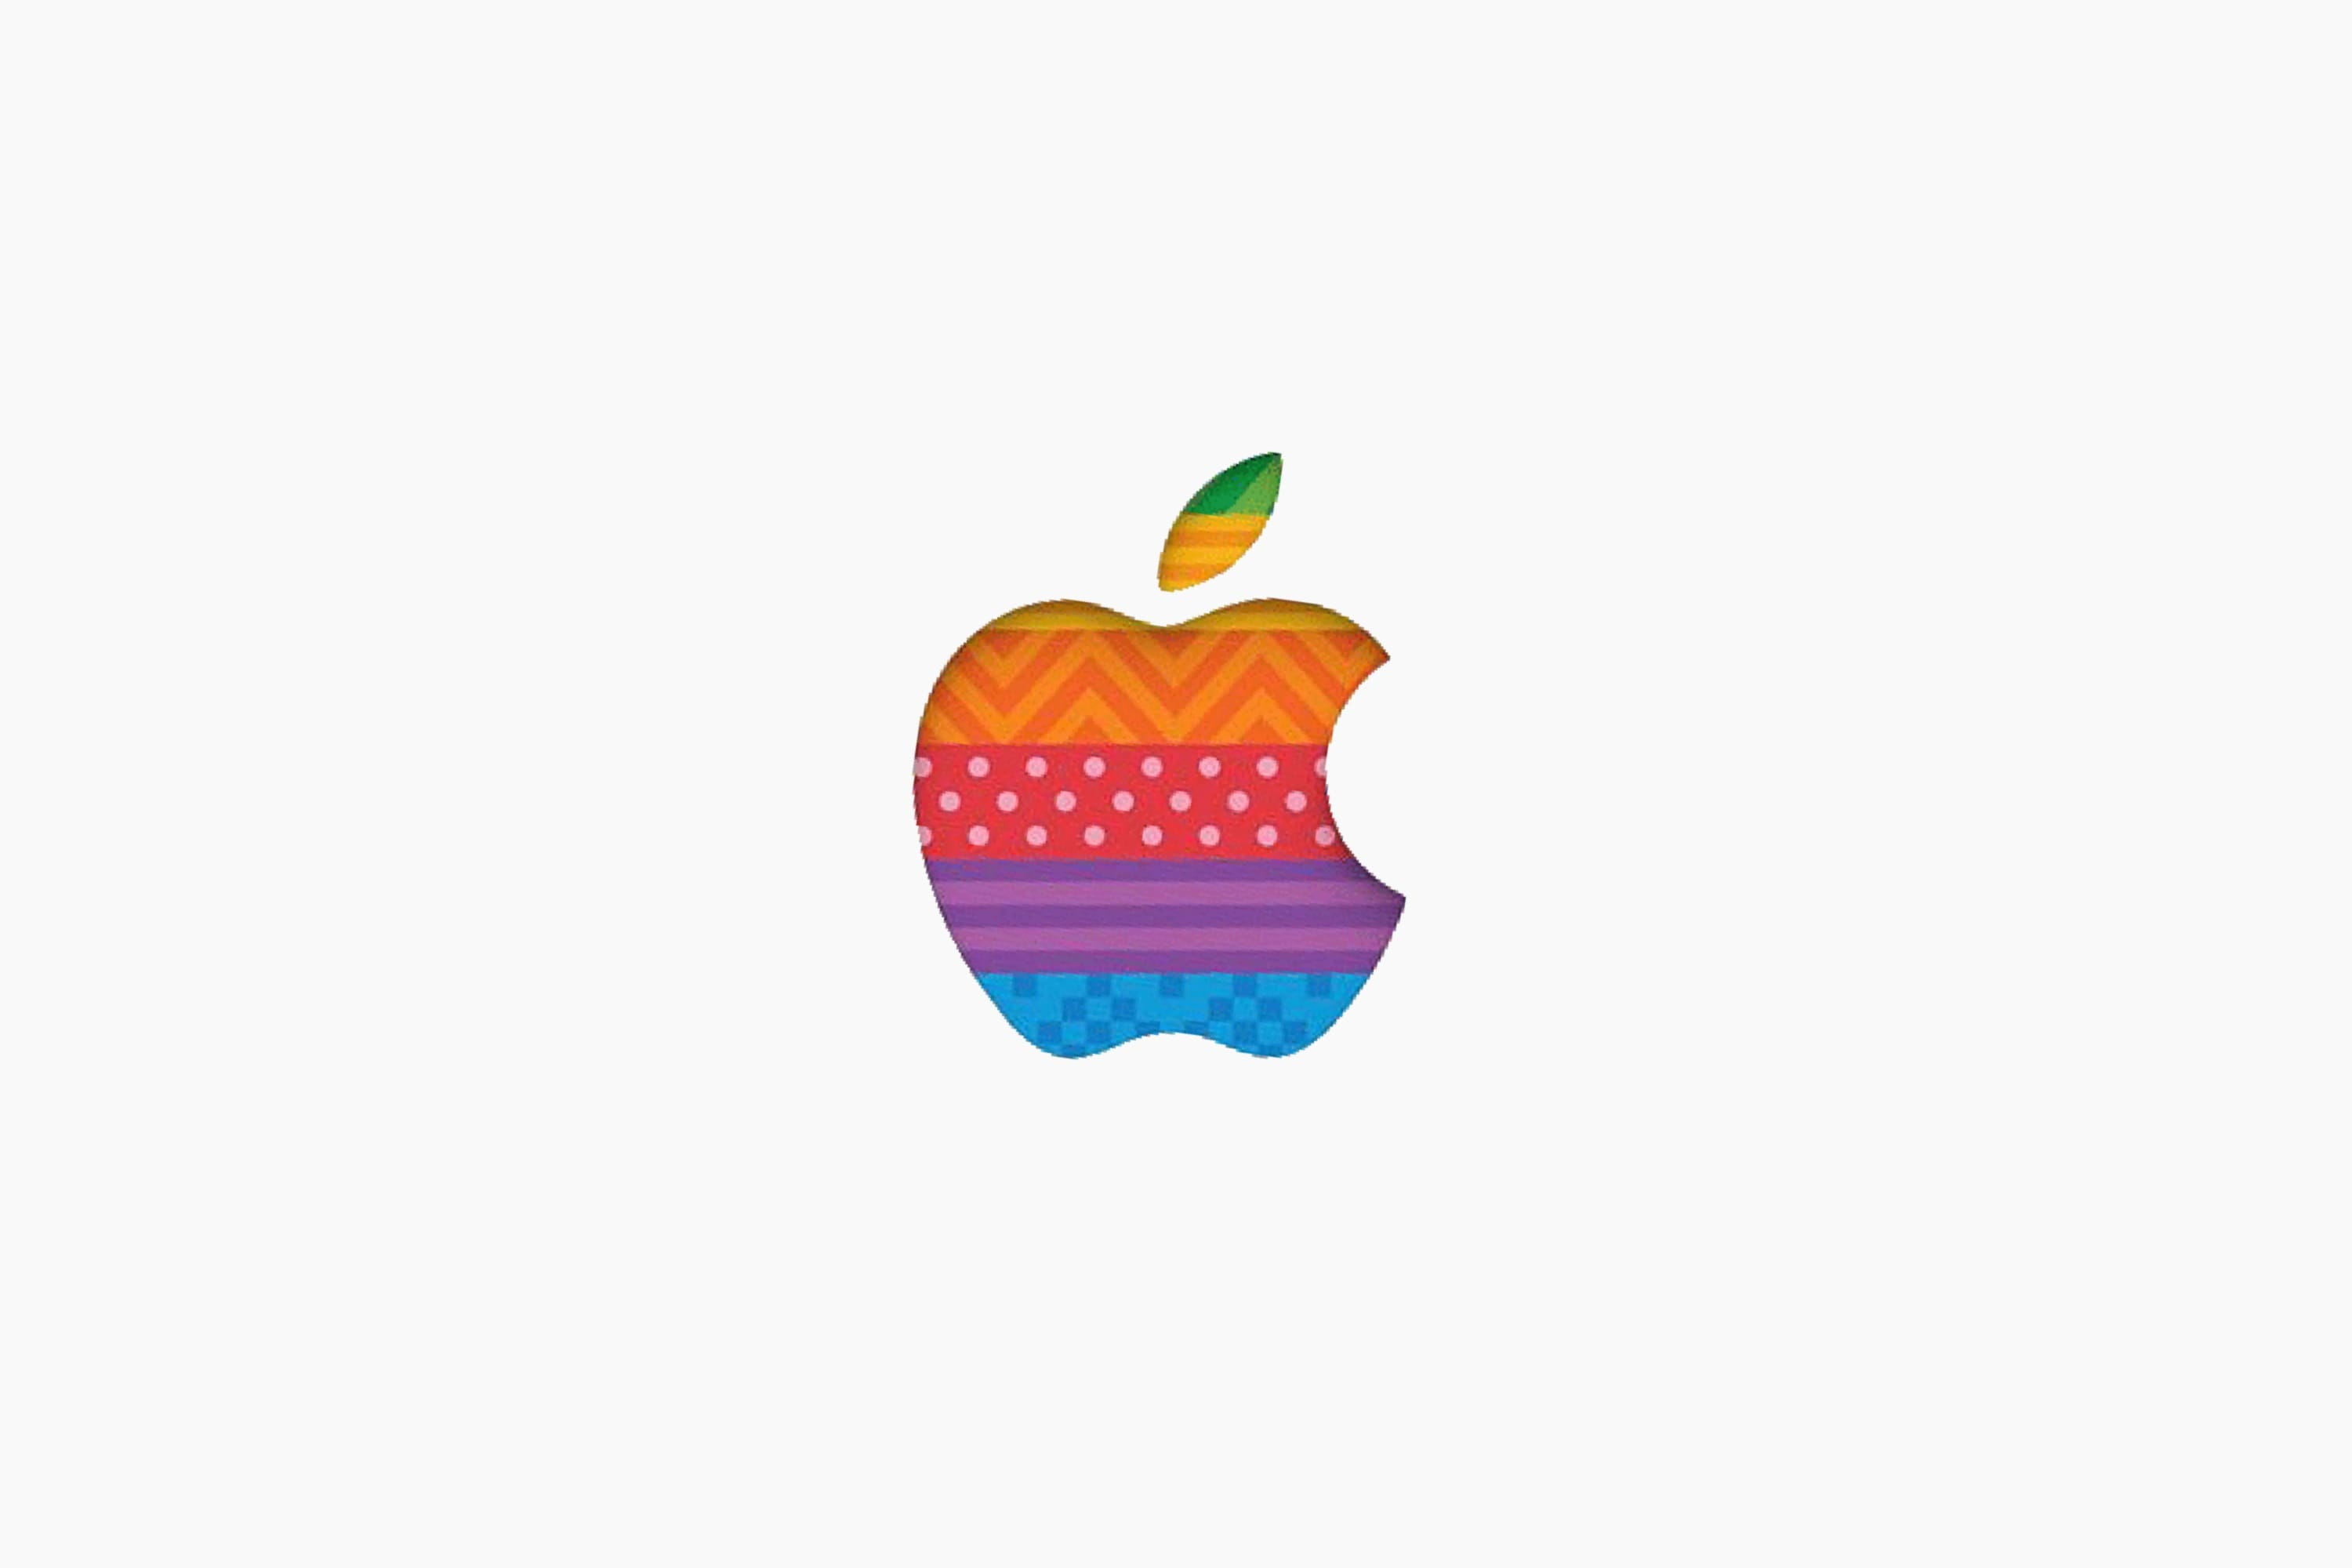 get-the-gift-card-for-everything-apple-this-black-friday-20201123-1